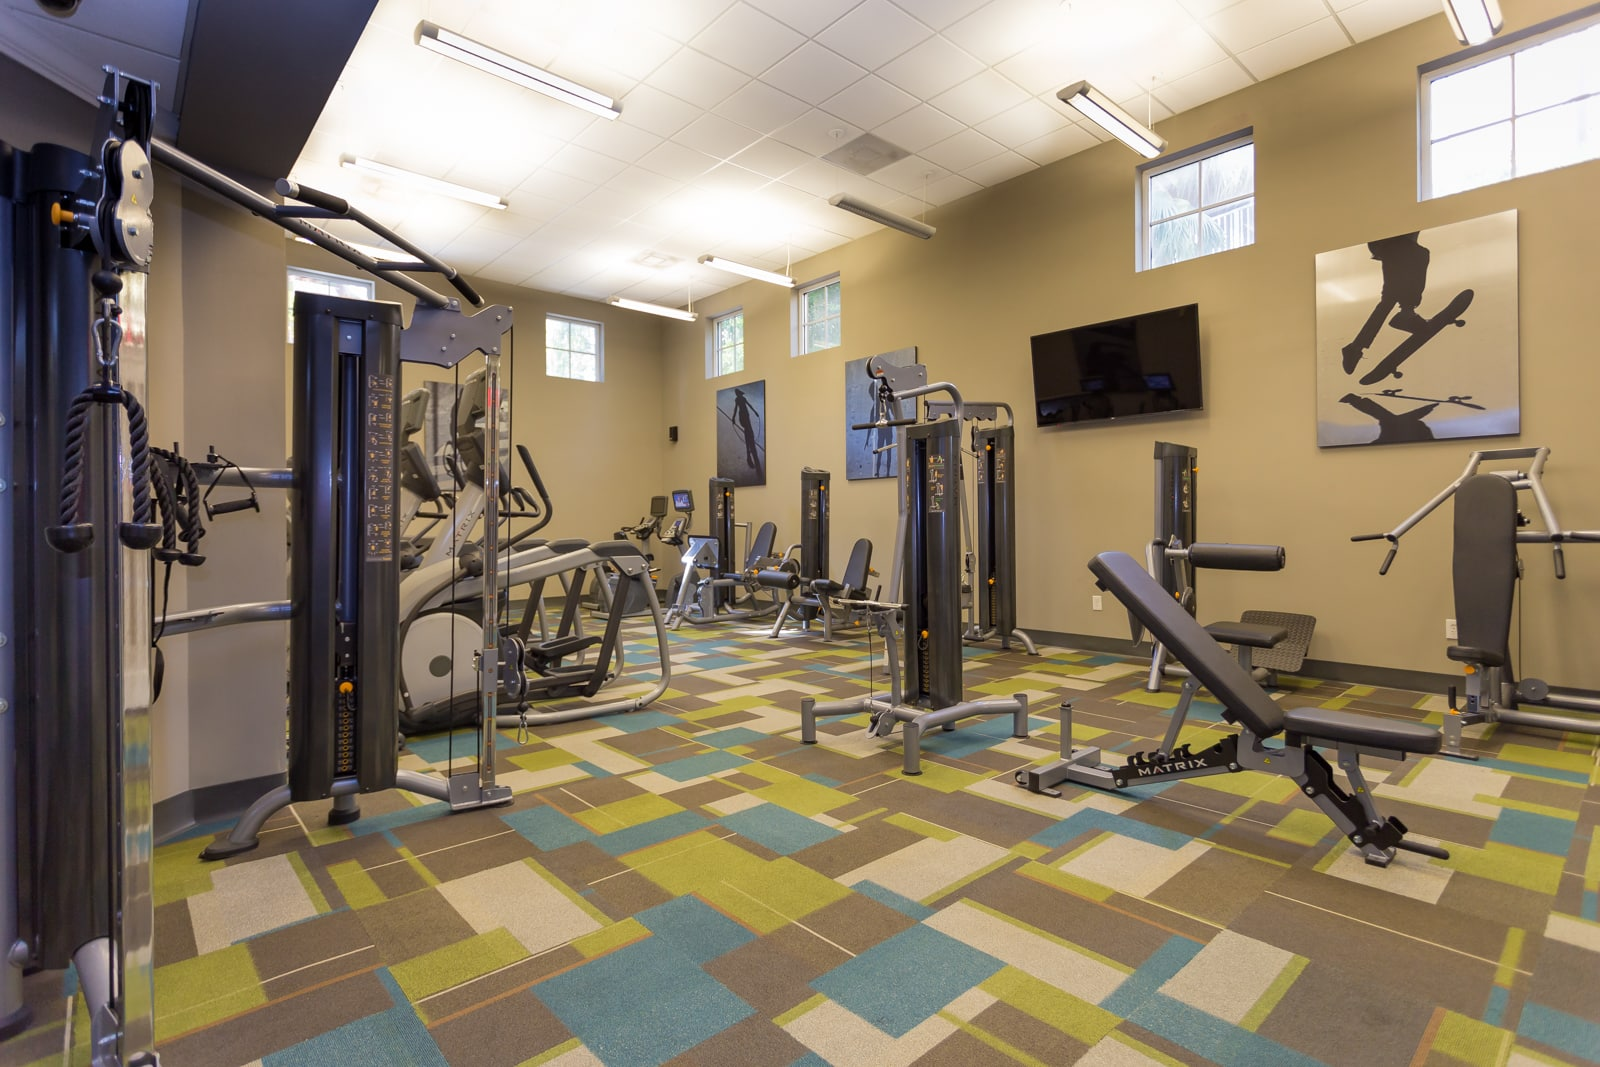 Fully Equipped Fitness Center with State-of-the-Art Equipment